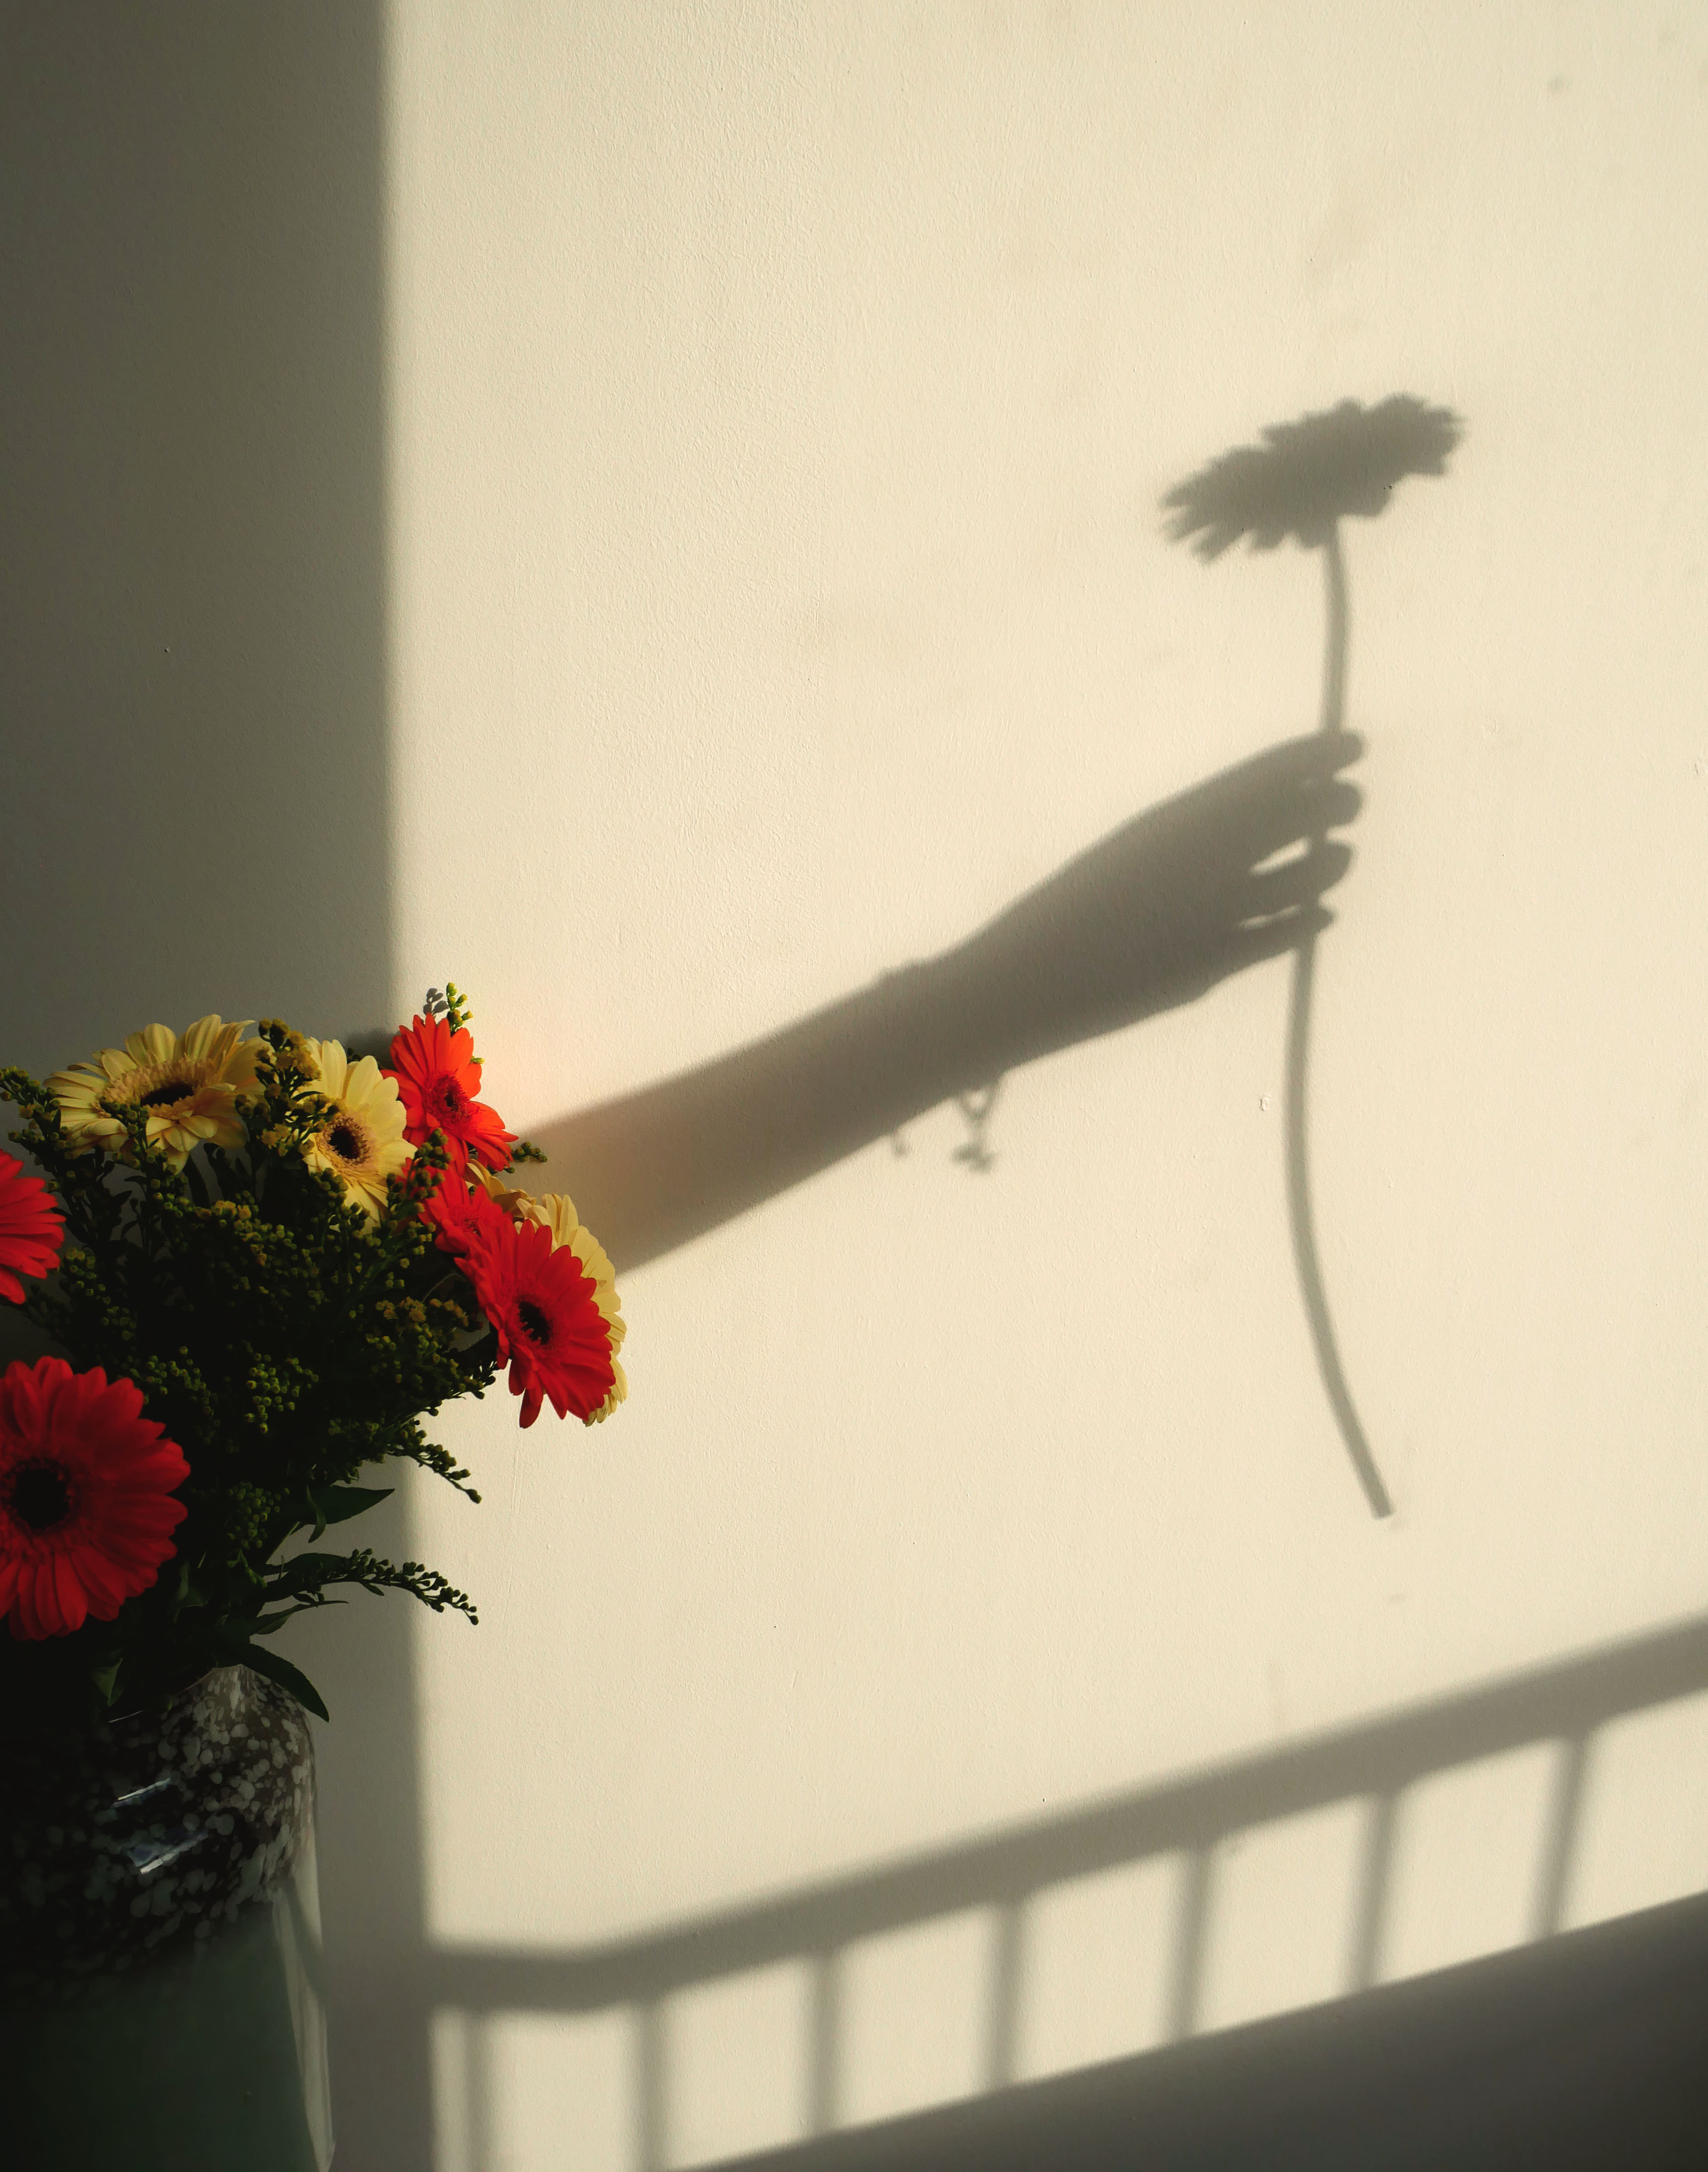 Shadow of an arm holding a flower next to a bunch of orange and yellow flowers, sunlight reflecting on a white wall.